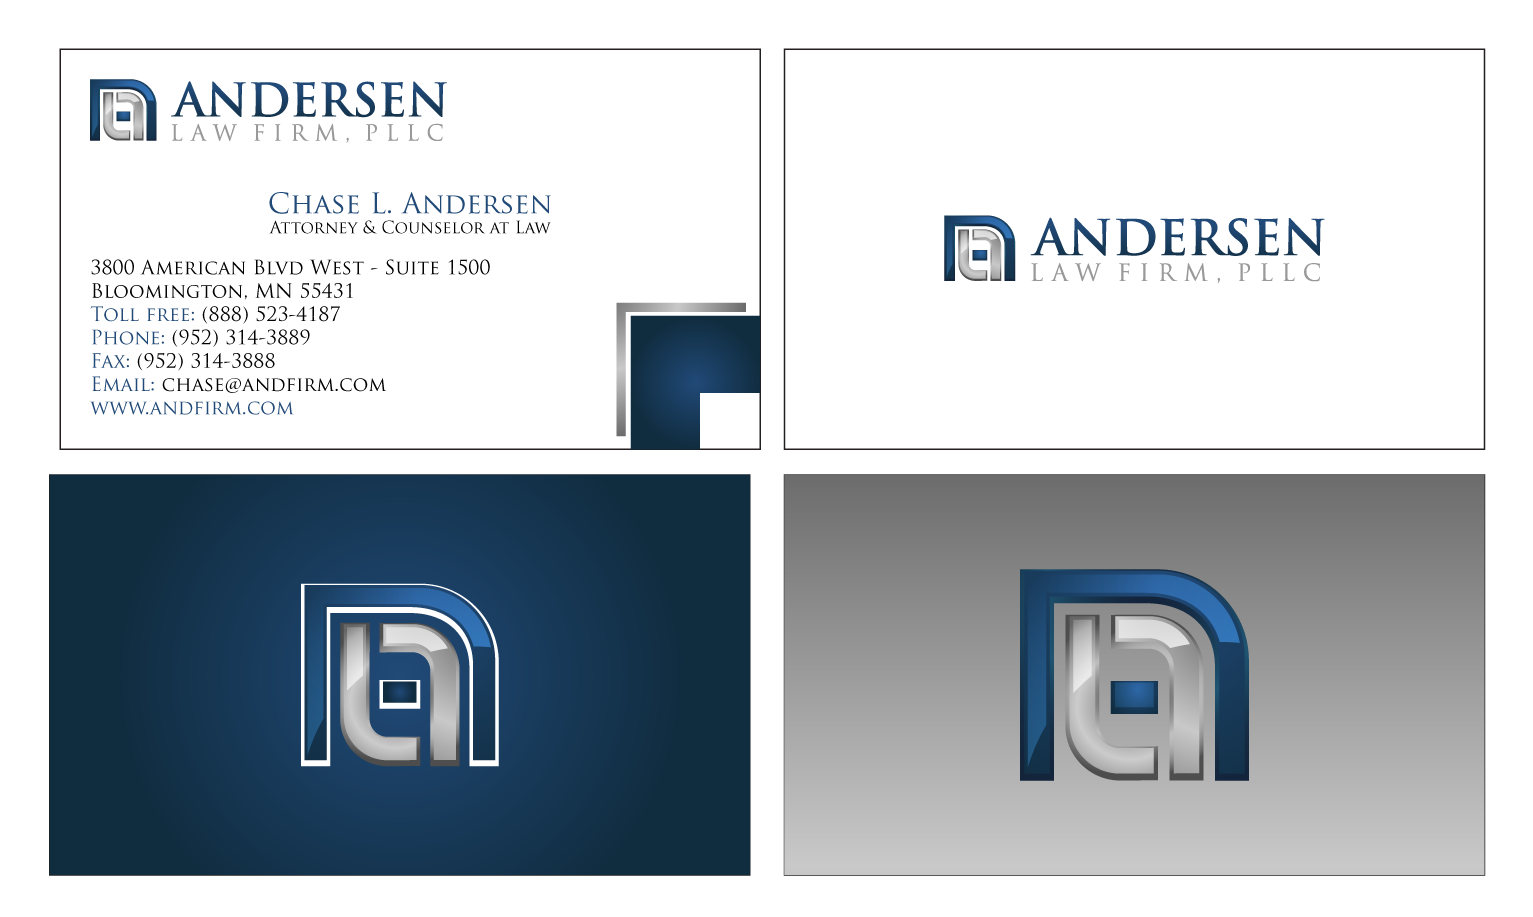 Check out this design for andersen law firm pllc business cards check out this design for andersen law firm pllc business cardsletterheadenvelopes by mycroburst colourmoves